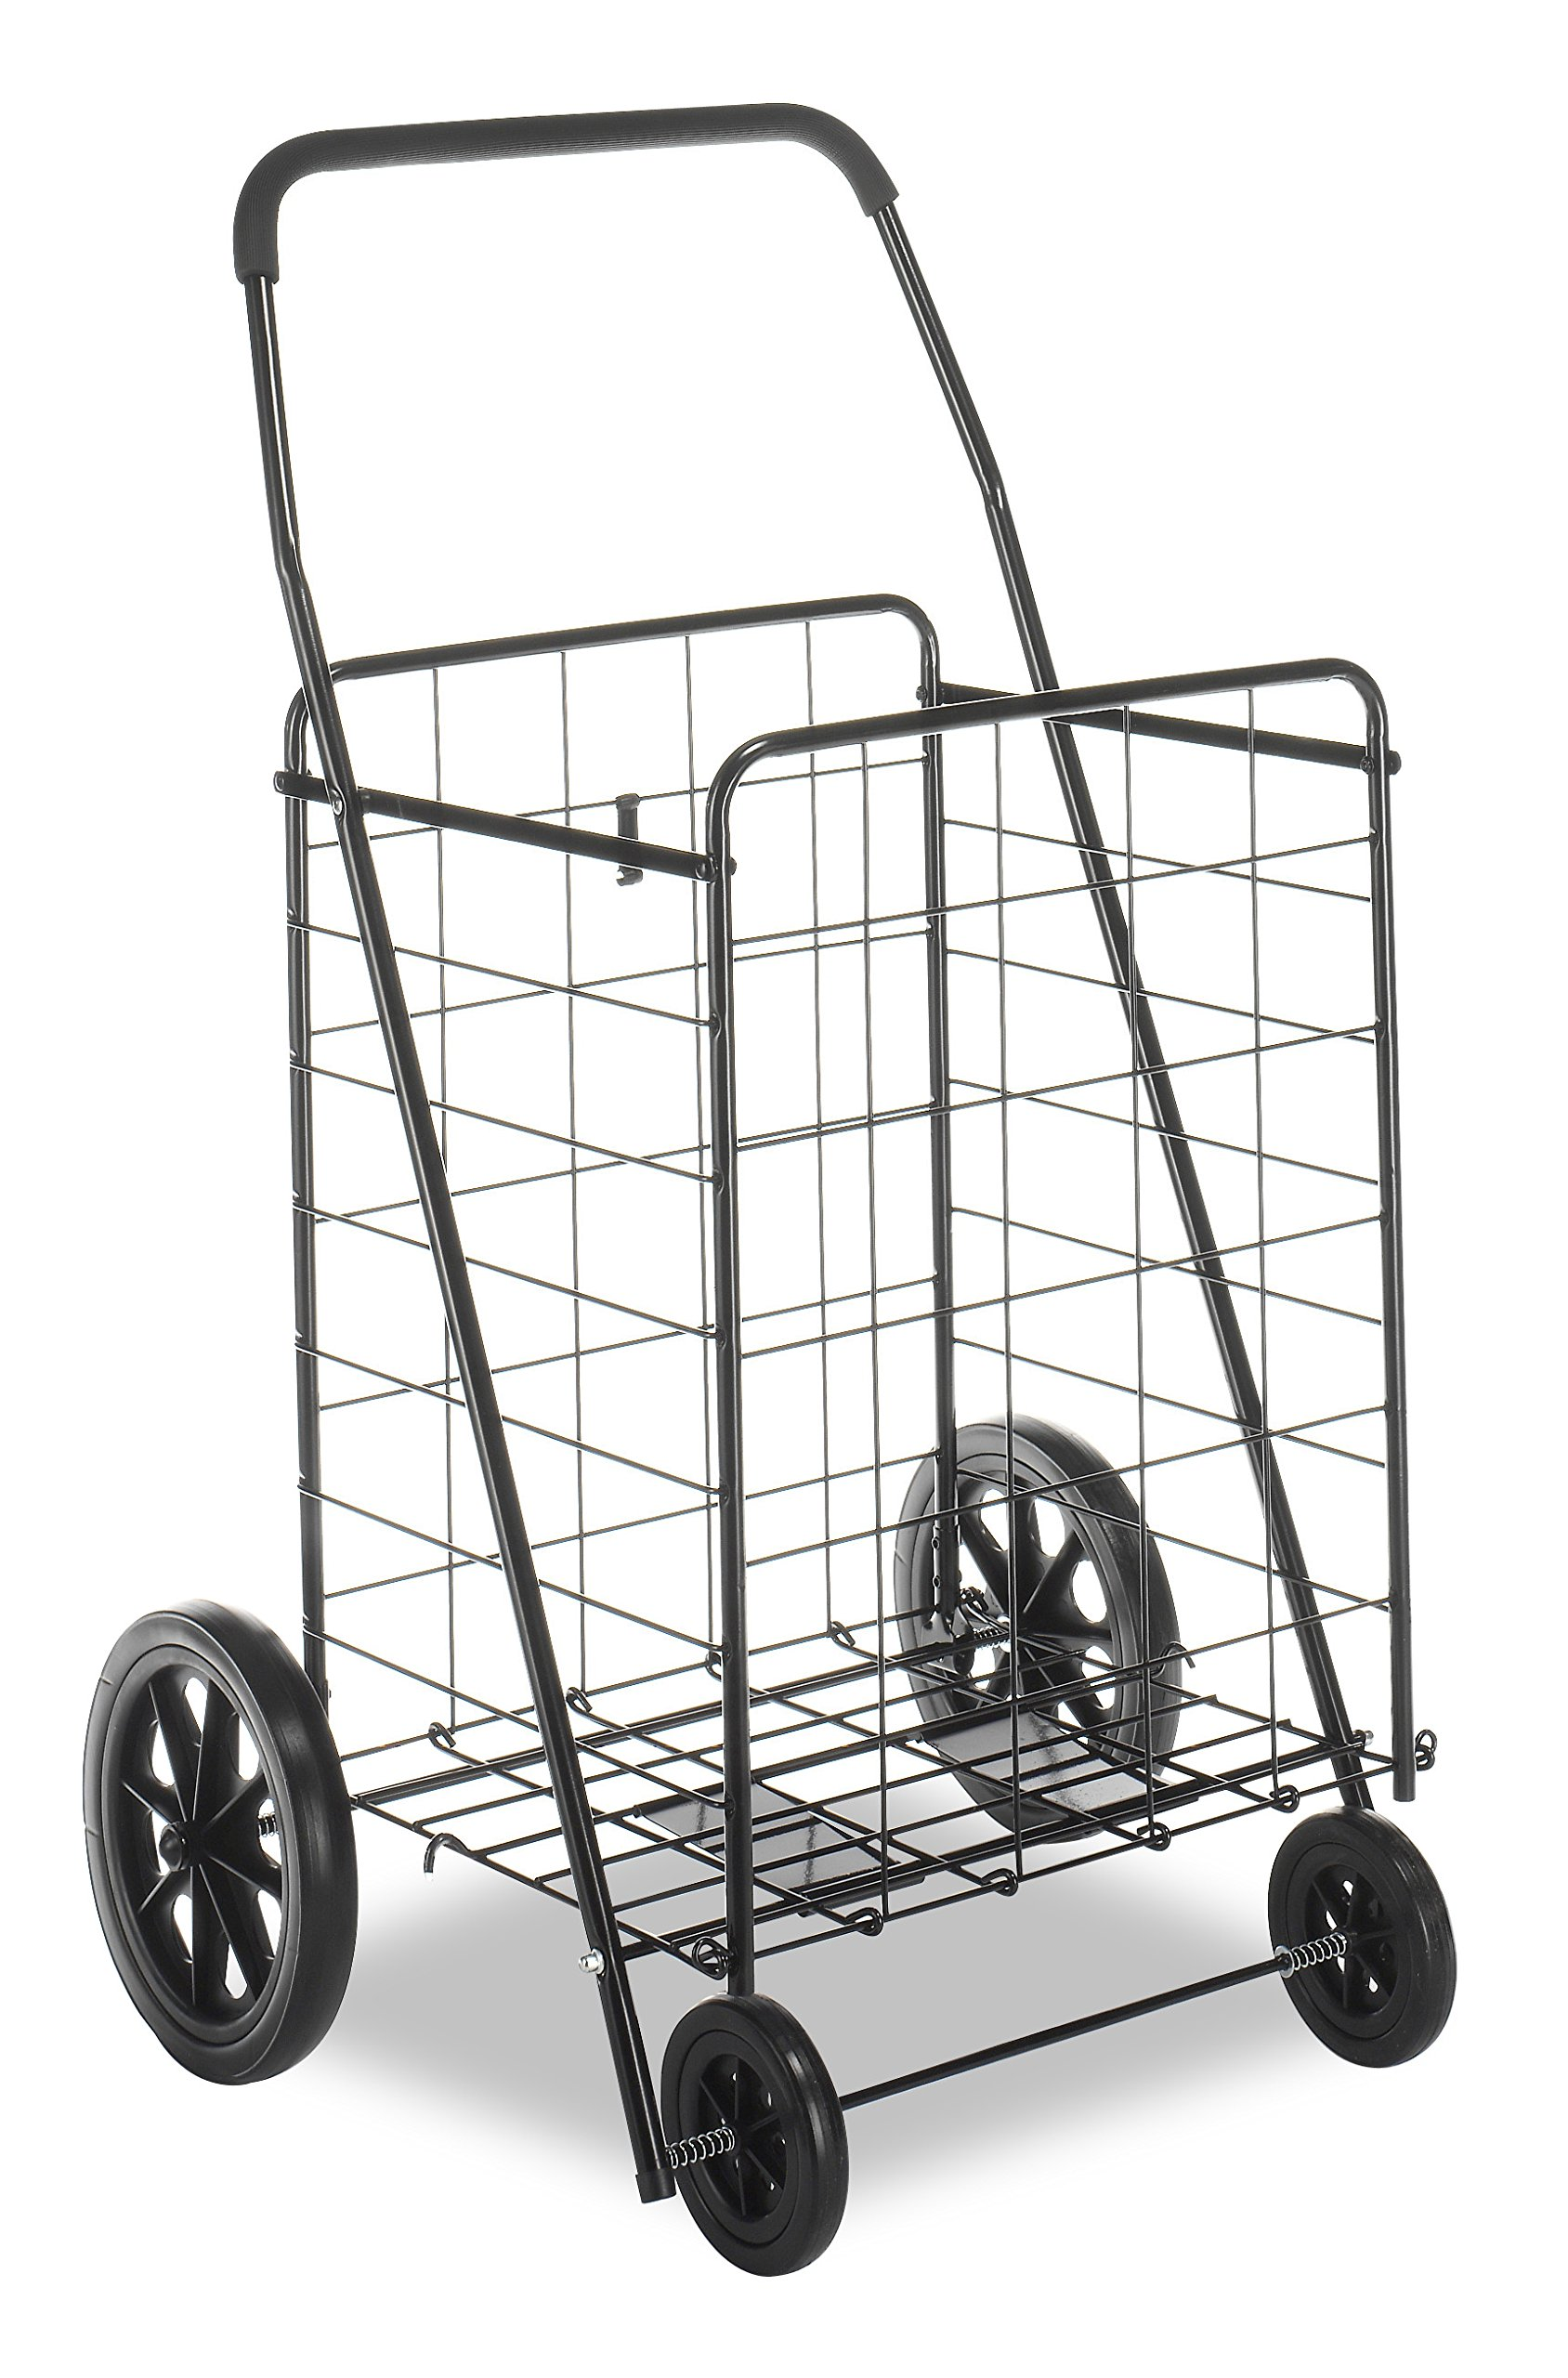 Whitmor Deluxe Utility Cart, Extra Large, Black by Whitmor